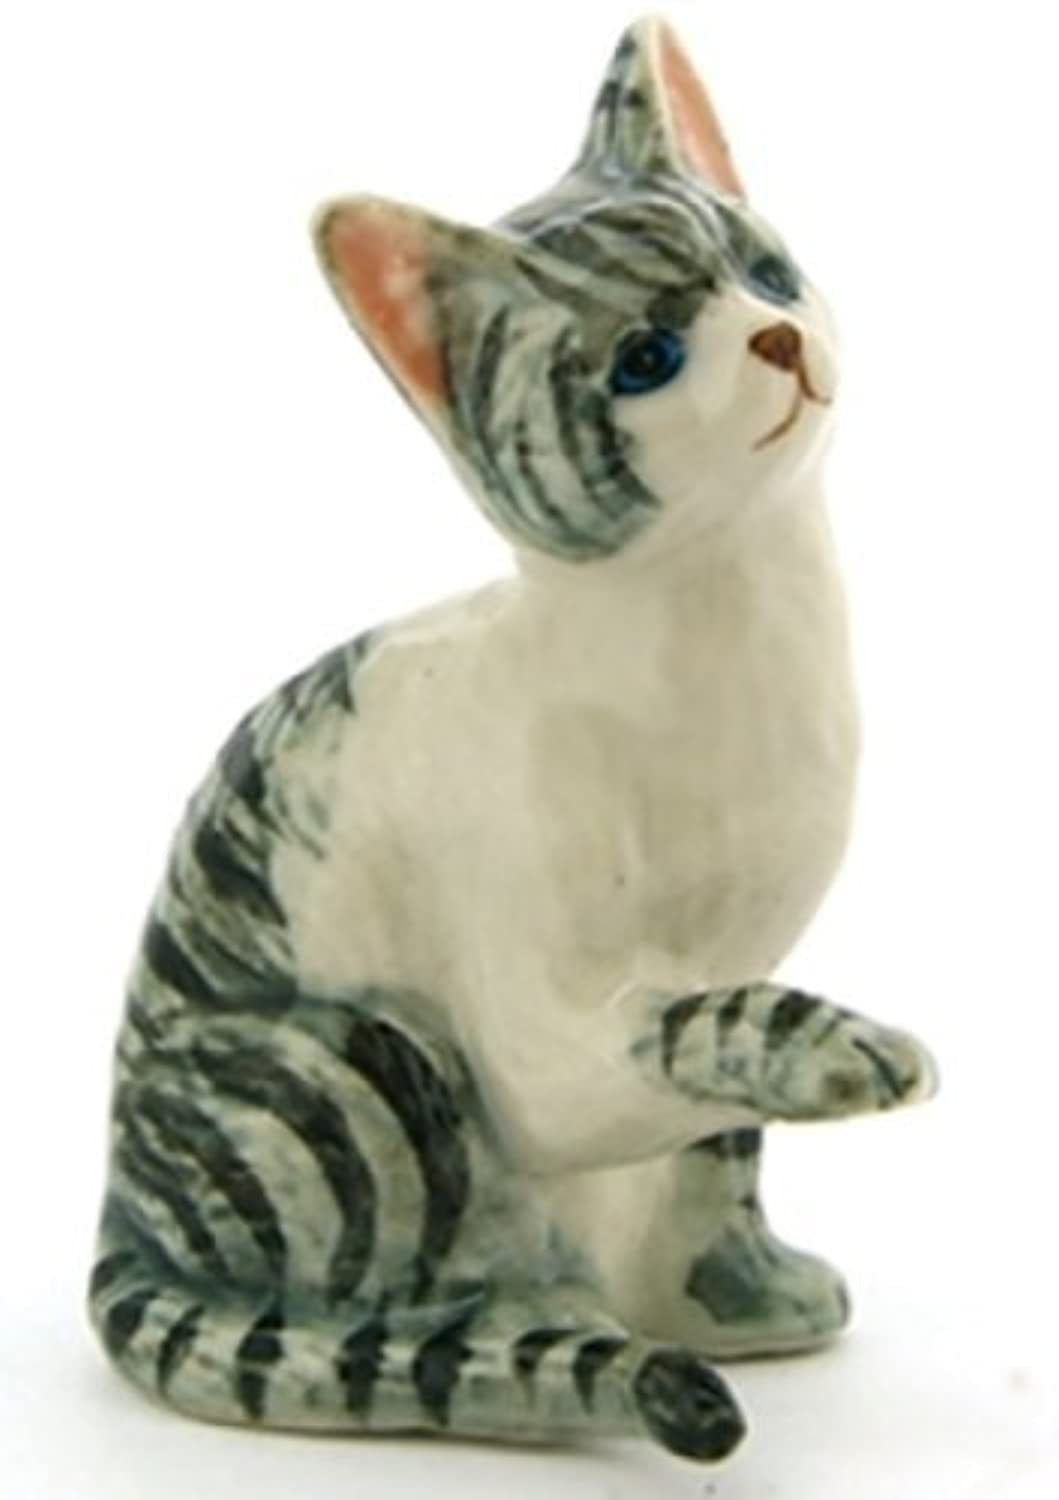 3 D Ceramic Toy Cat No.4 Dollhouse Miniatures Free Ship by ChangThai Design [並行輸入品]